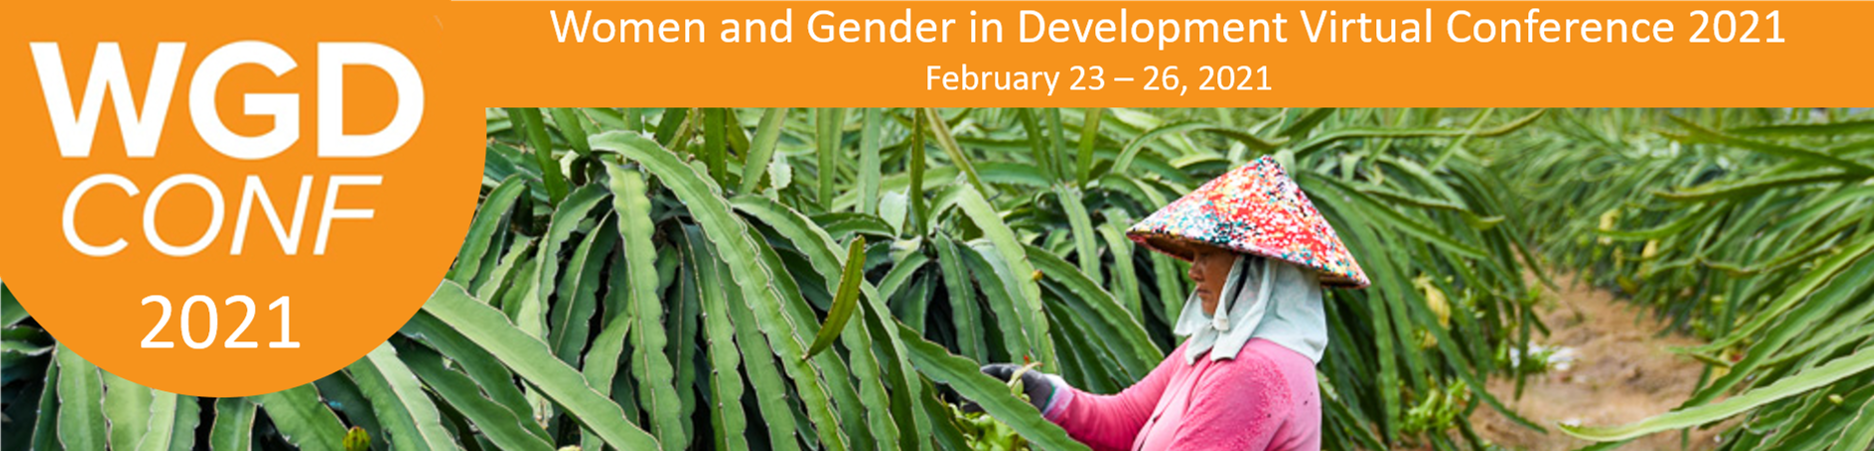 Women and Gender Conference